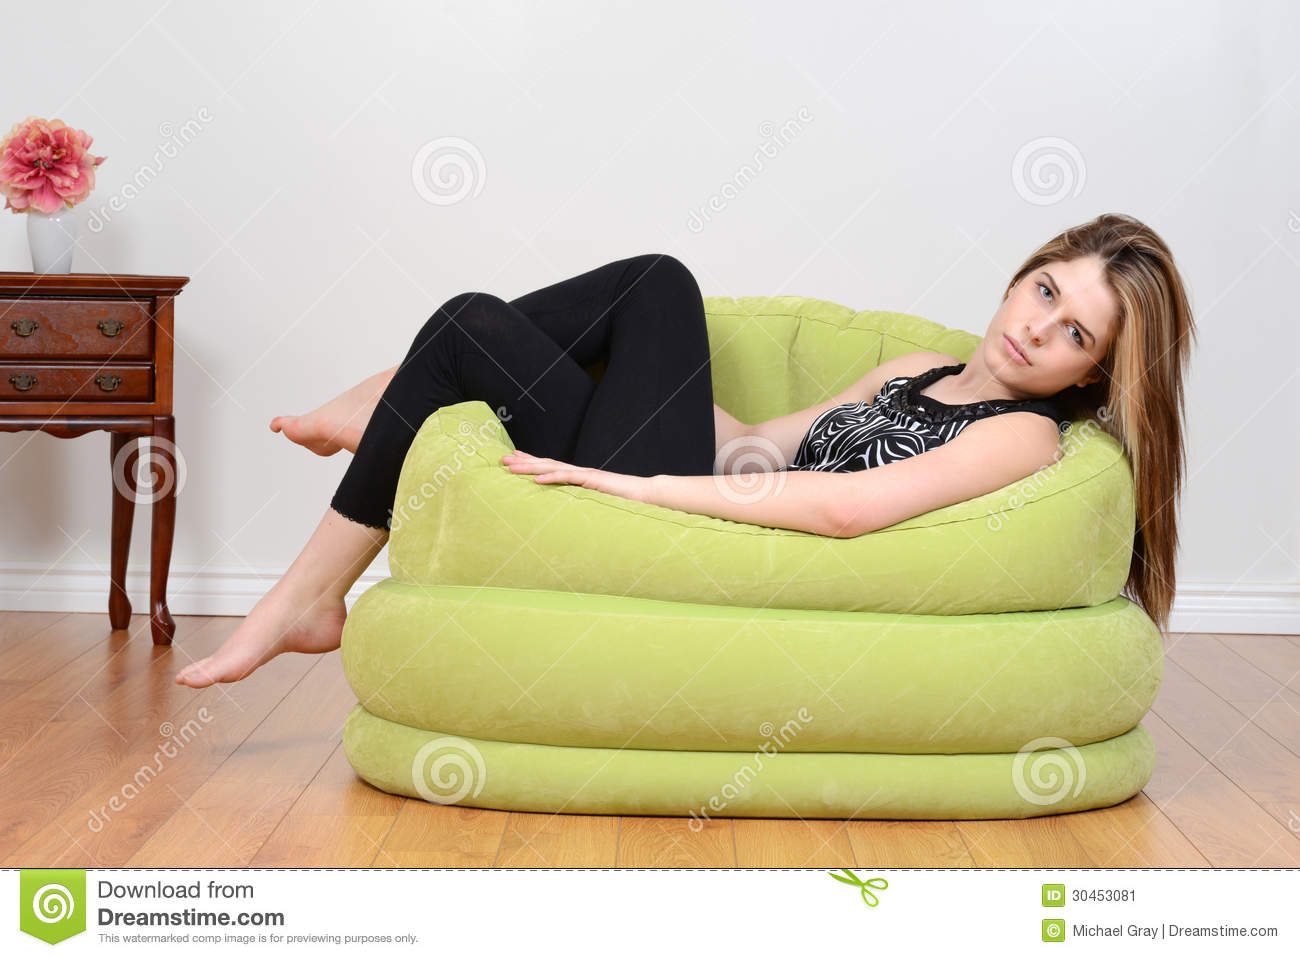 Download Teen Relaxing In Green Bean Bag Chair Stock Image   Image Of  Furniture, Gorgeous